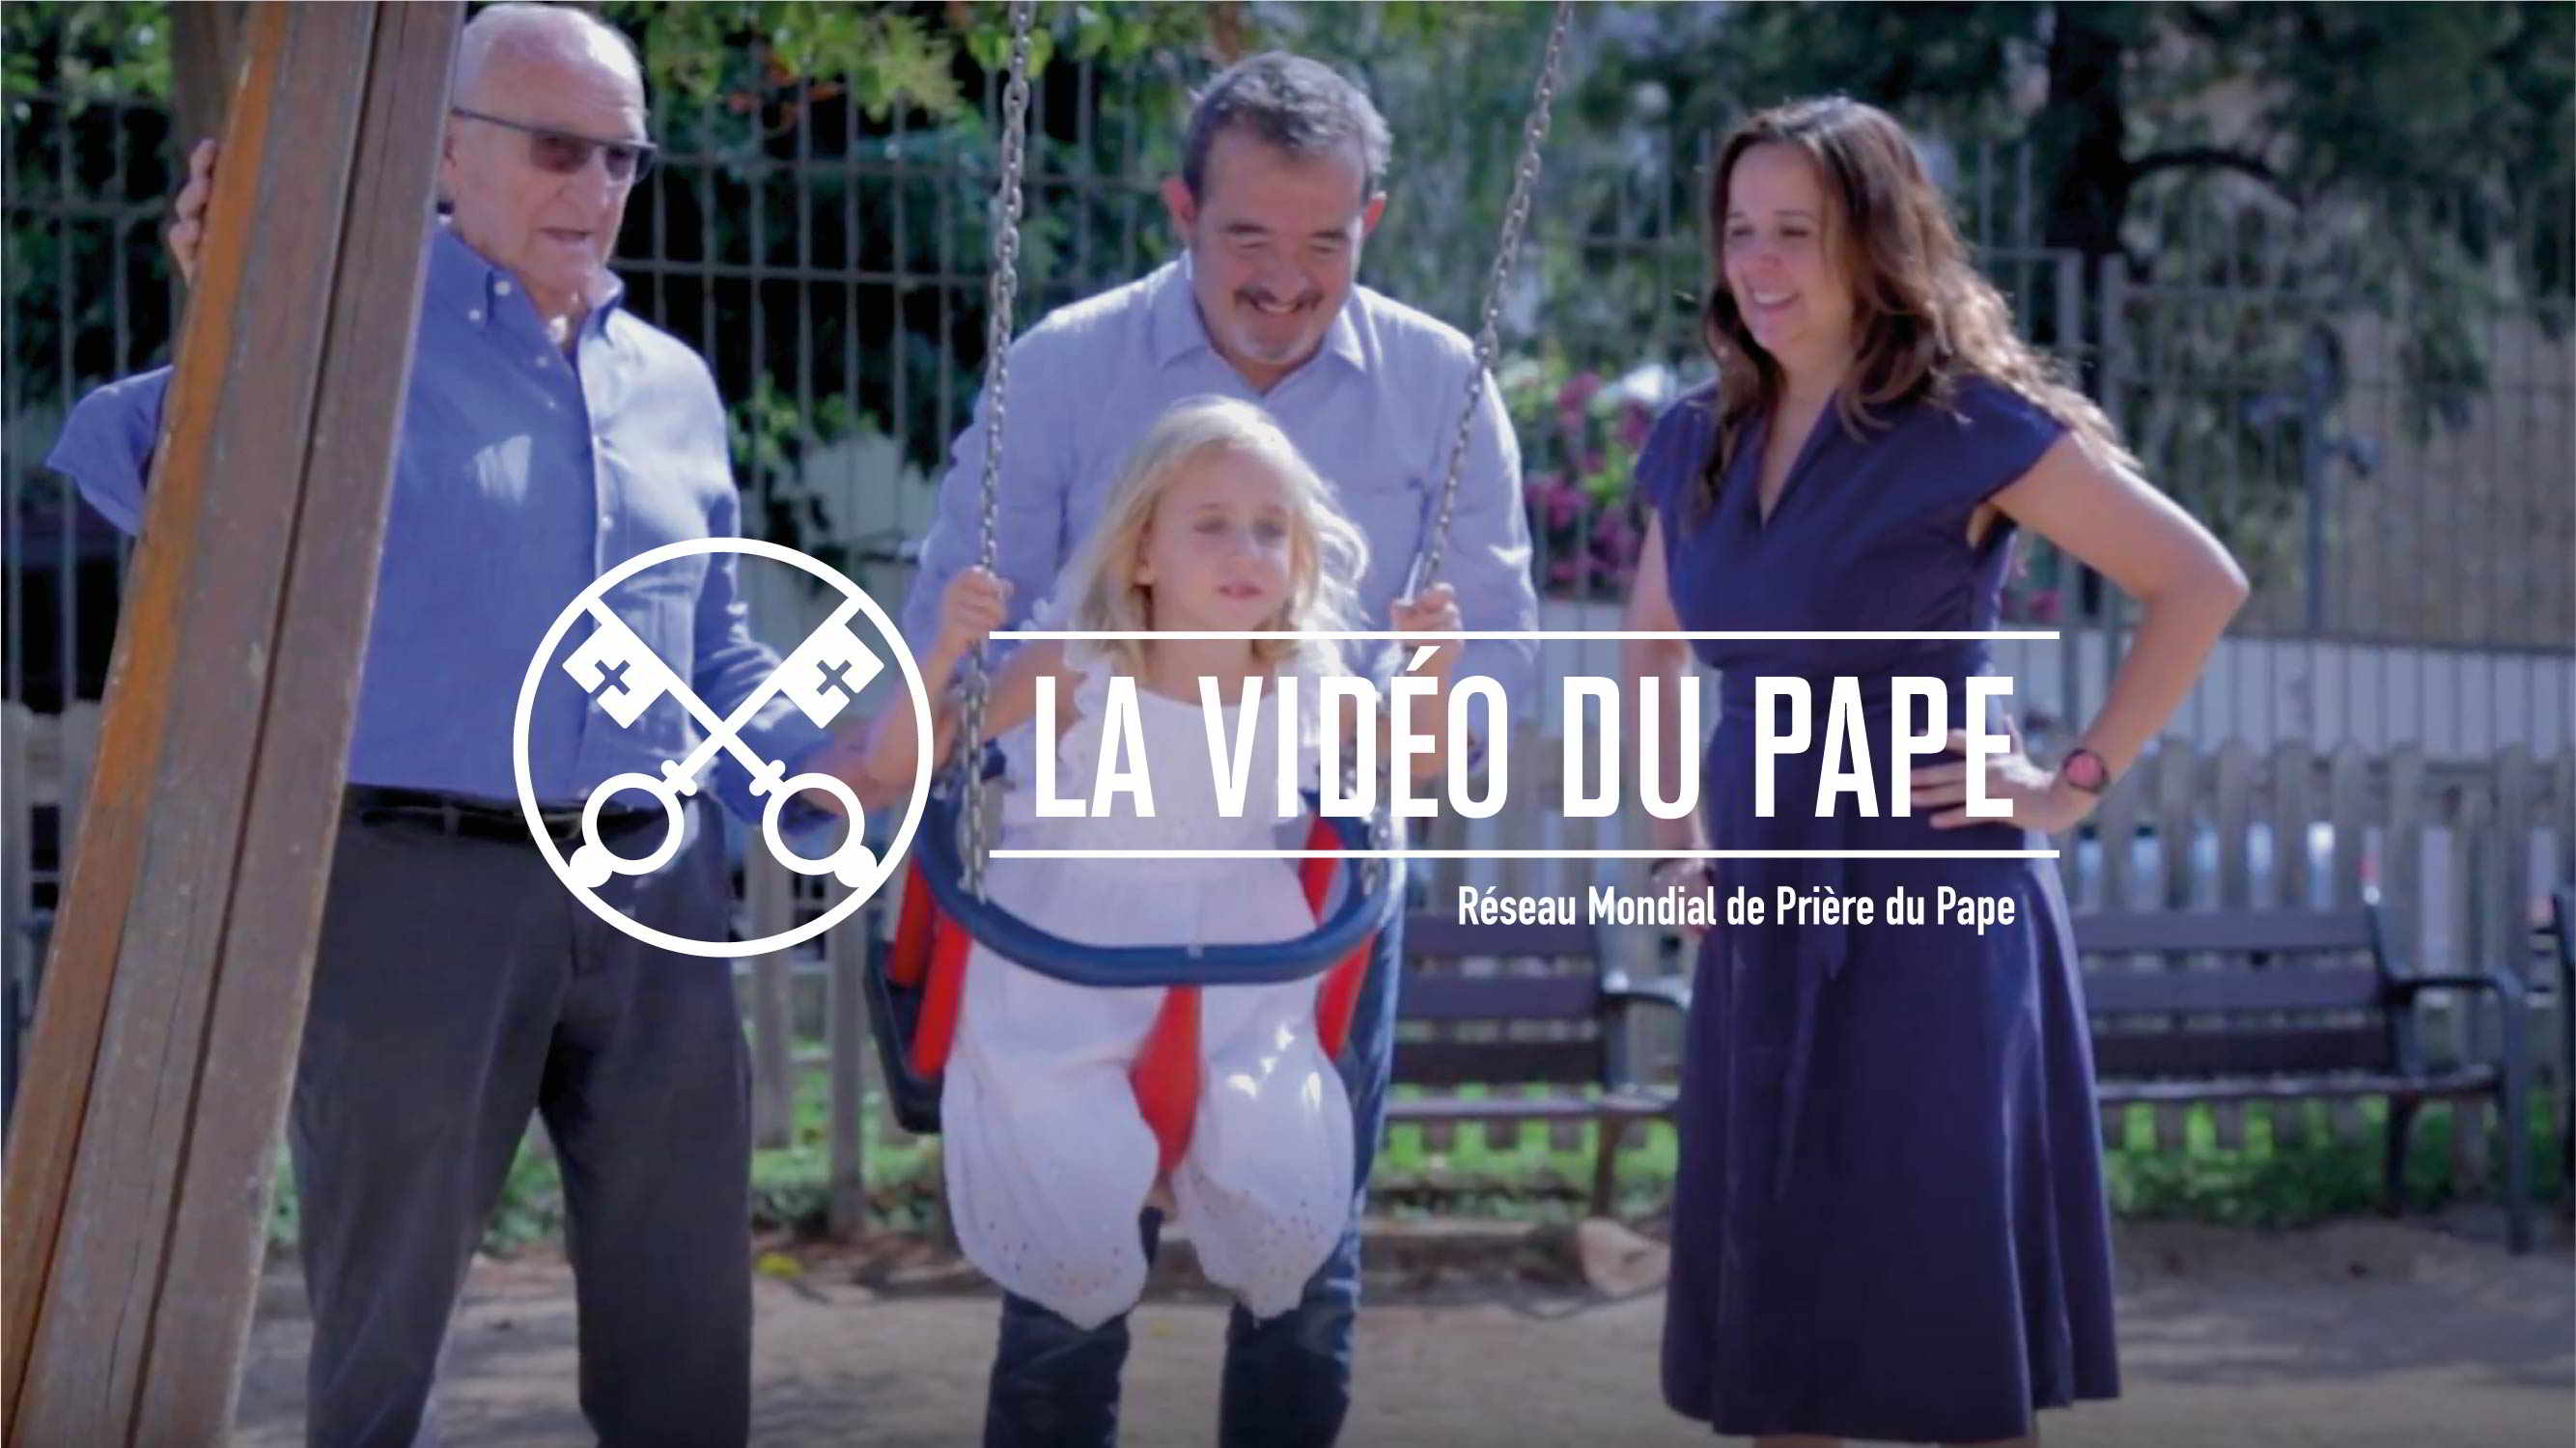 Official-Image-The-Pope-Video-8-2018-The-Treasure-of-Families-4-French